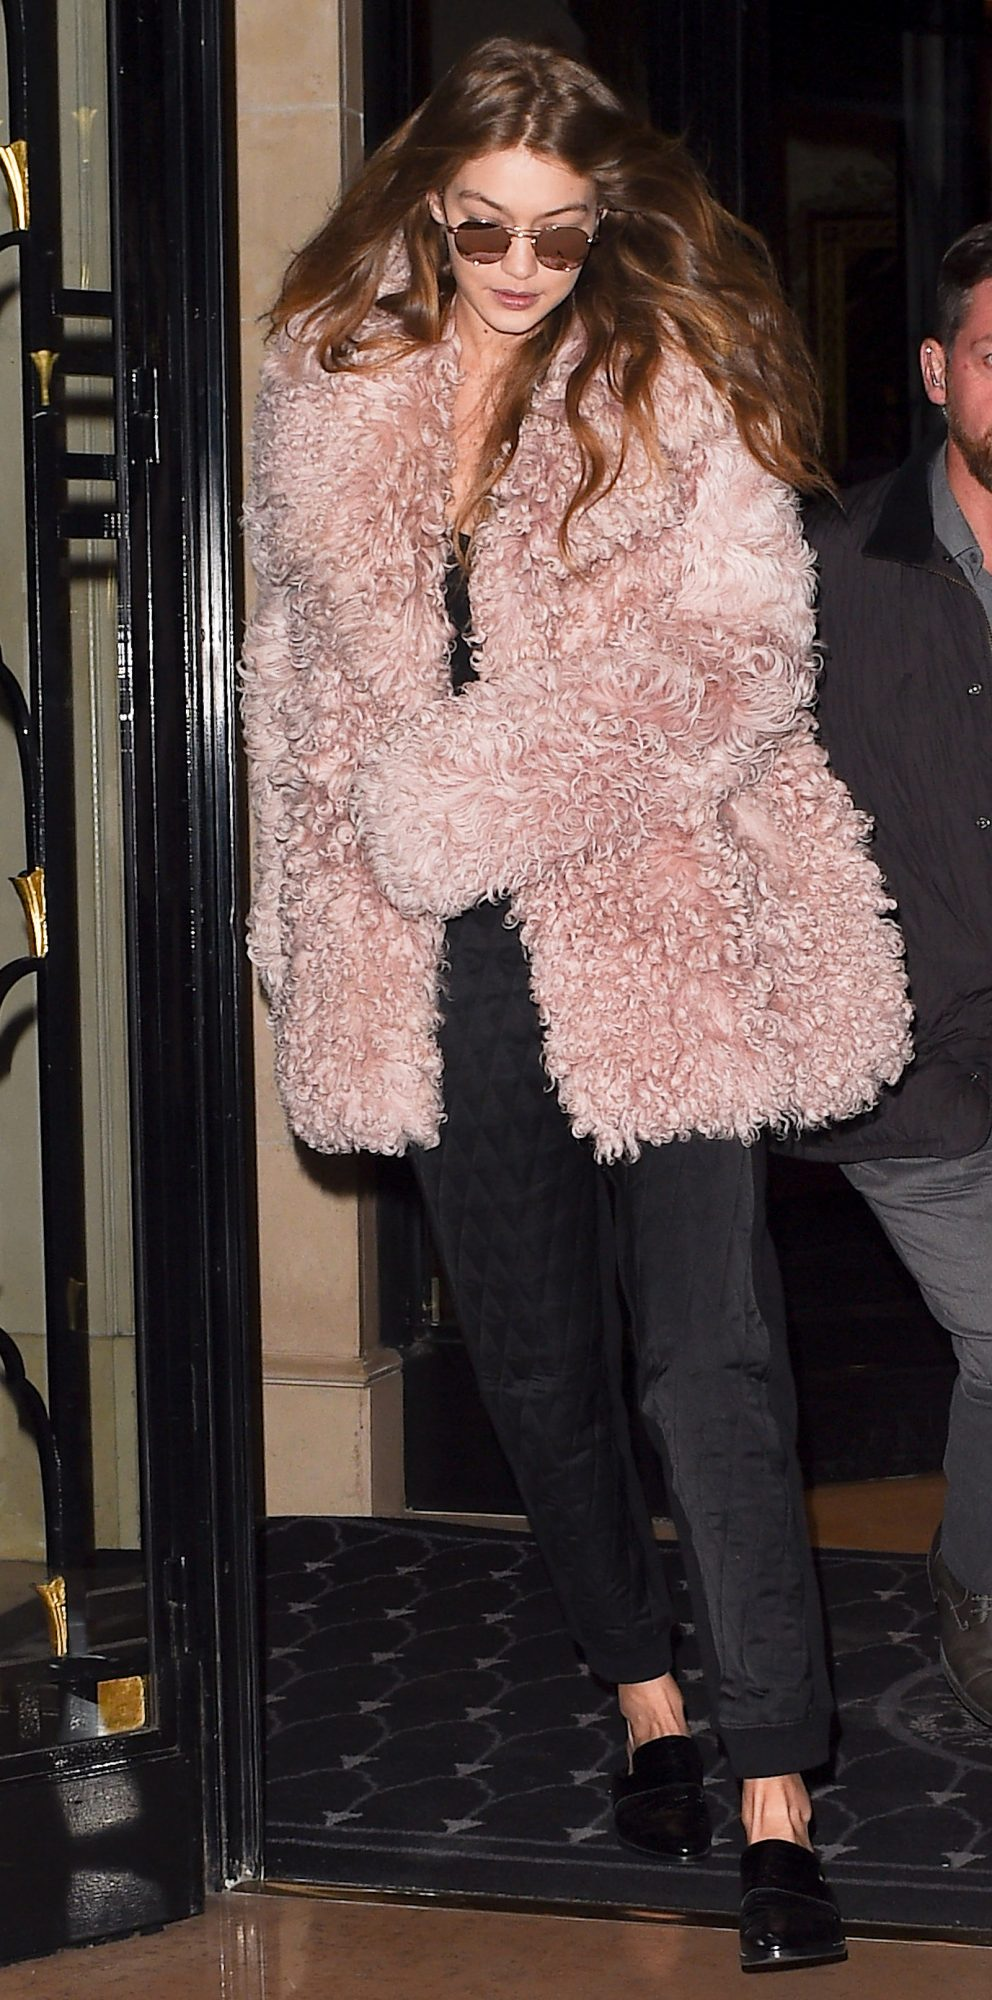 Gigi Hadid Channels Rihanna and Warms Up in a Fluffy Pink Coat at Paris Fashion Week